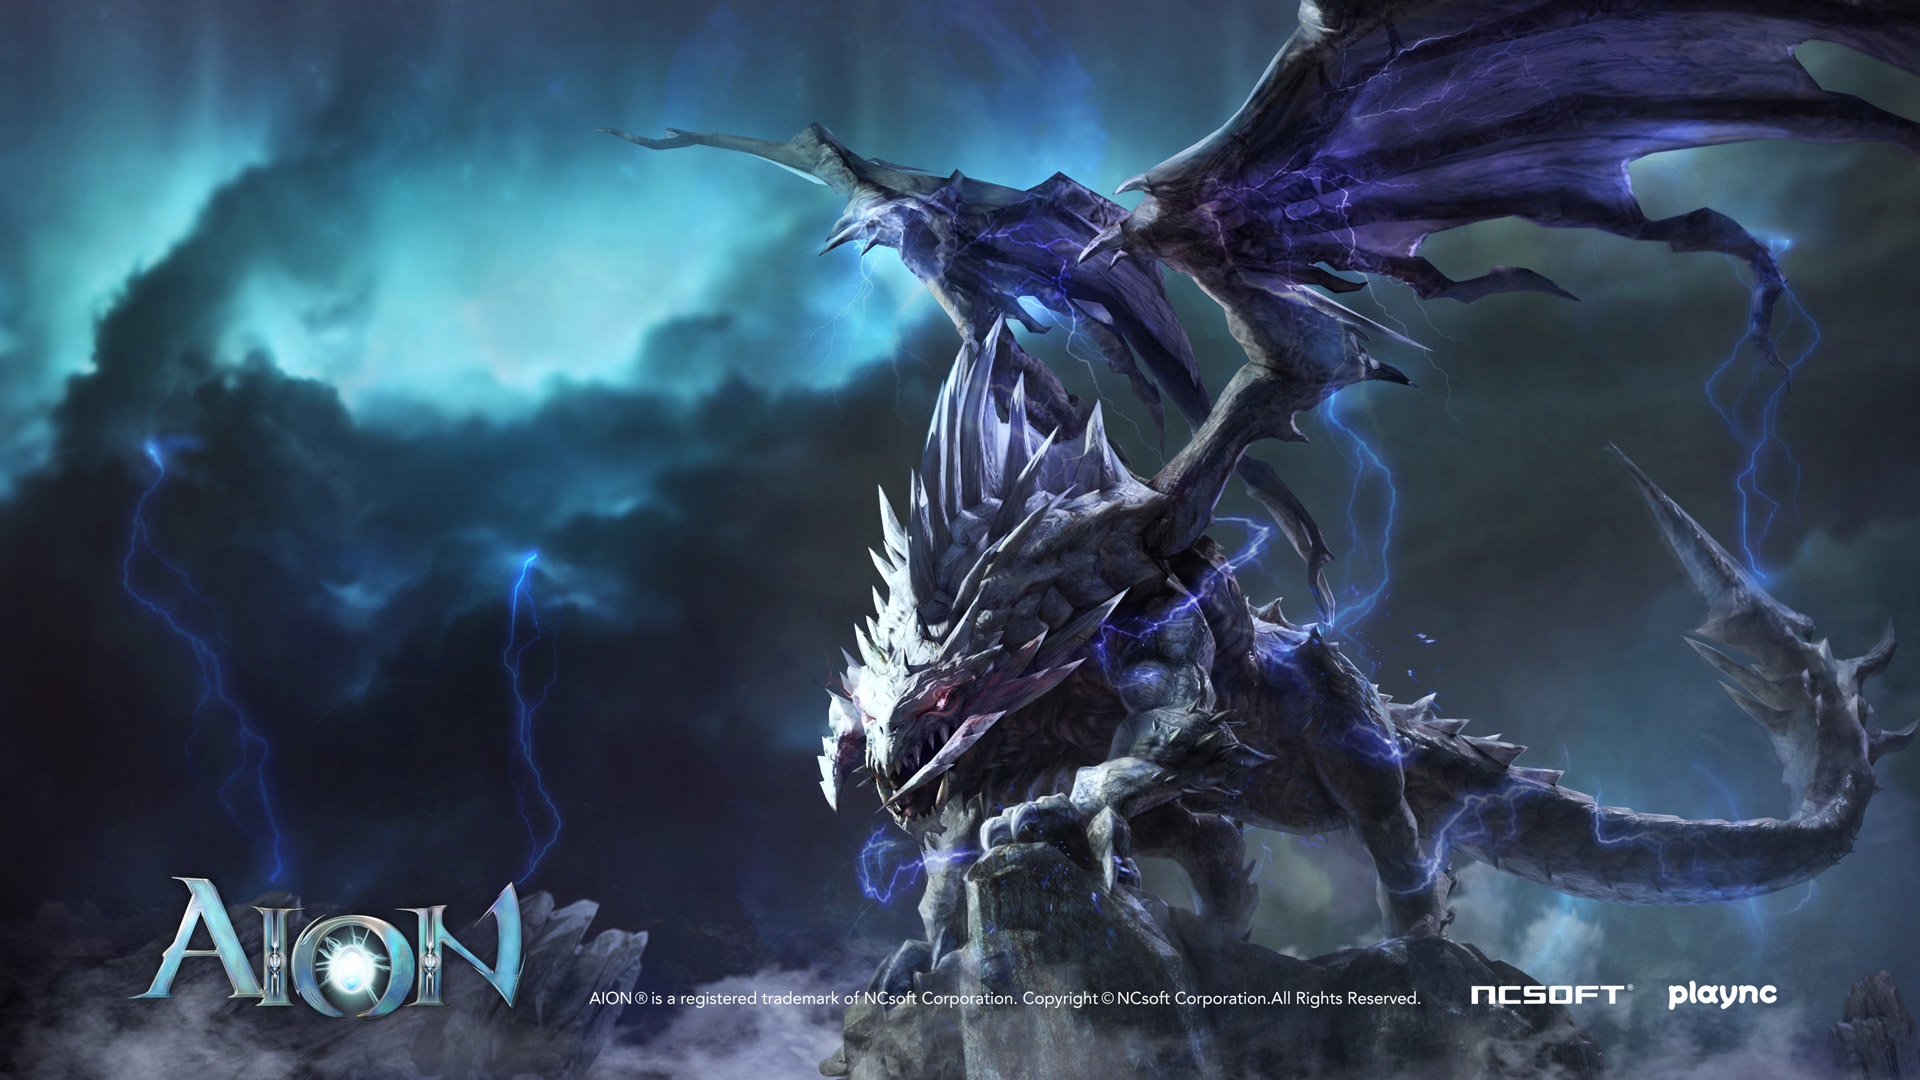 Enjoy this wallpaper of Aion in a resolution of 1920 x 1080 , don't ...: wallpapersbq.com/aion/aion-wallpaper-4